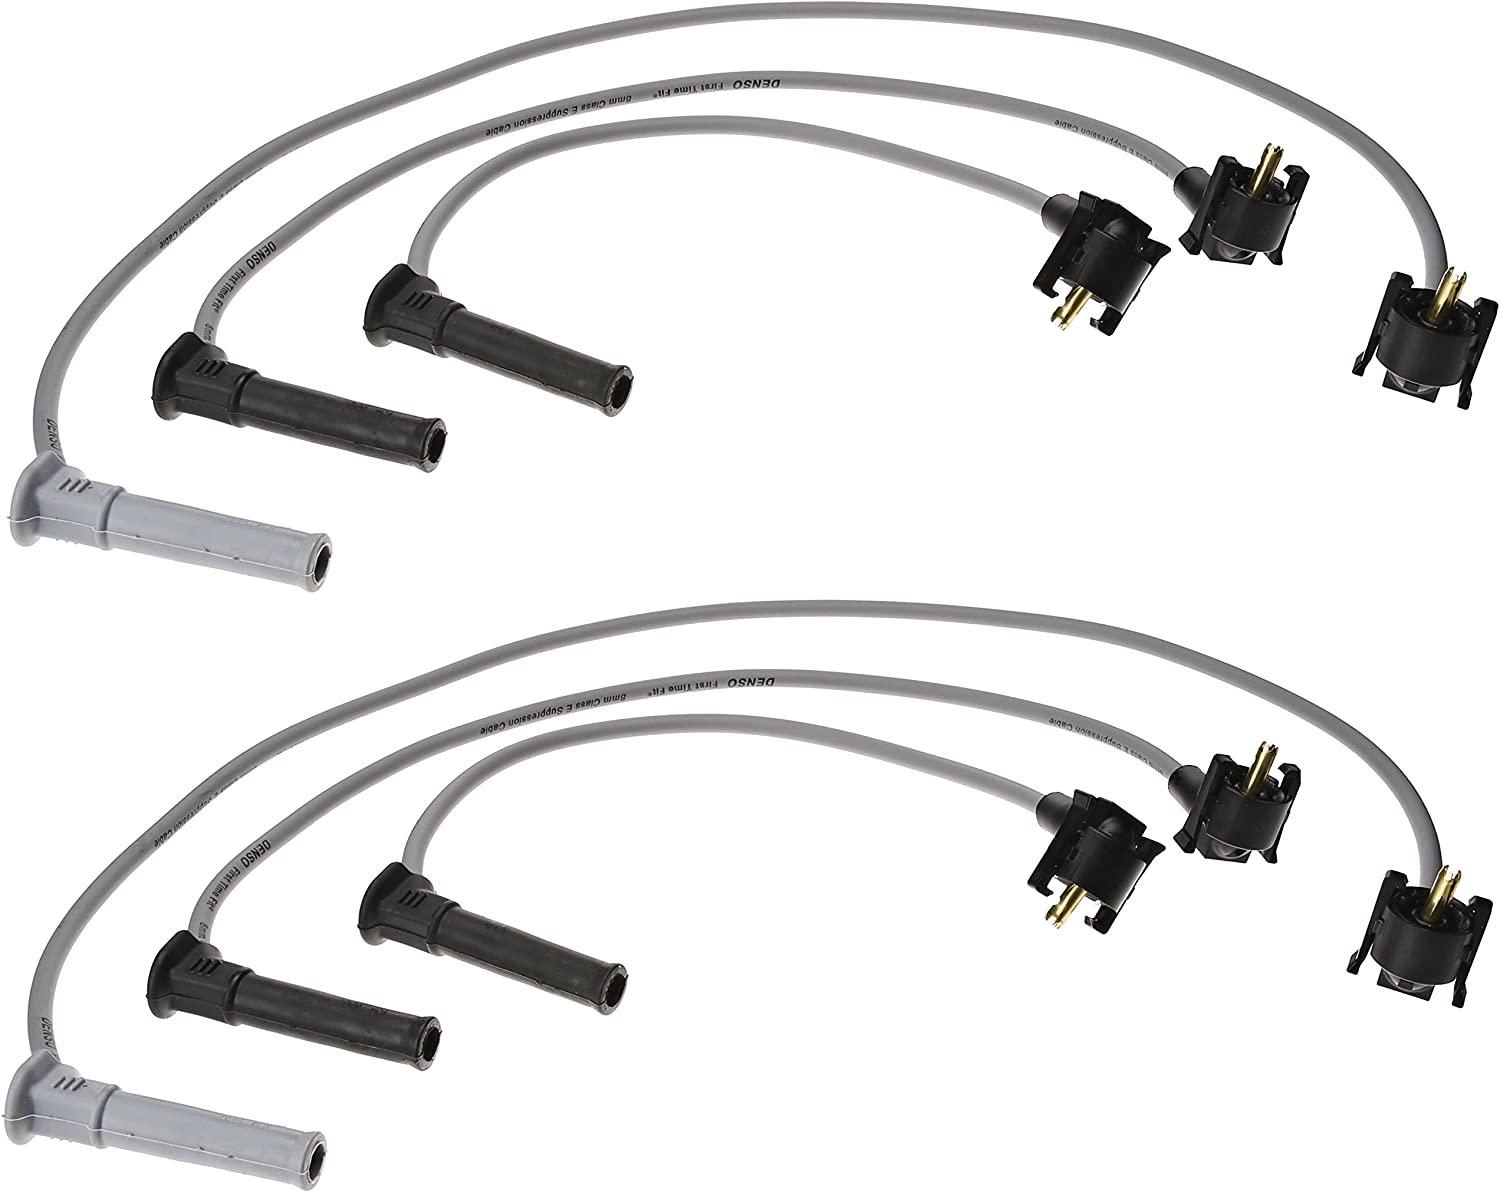 Denso 671-6115 Original Equipment Replacement Wires